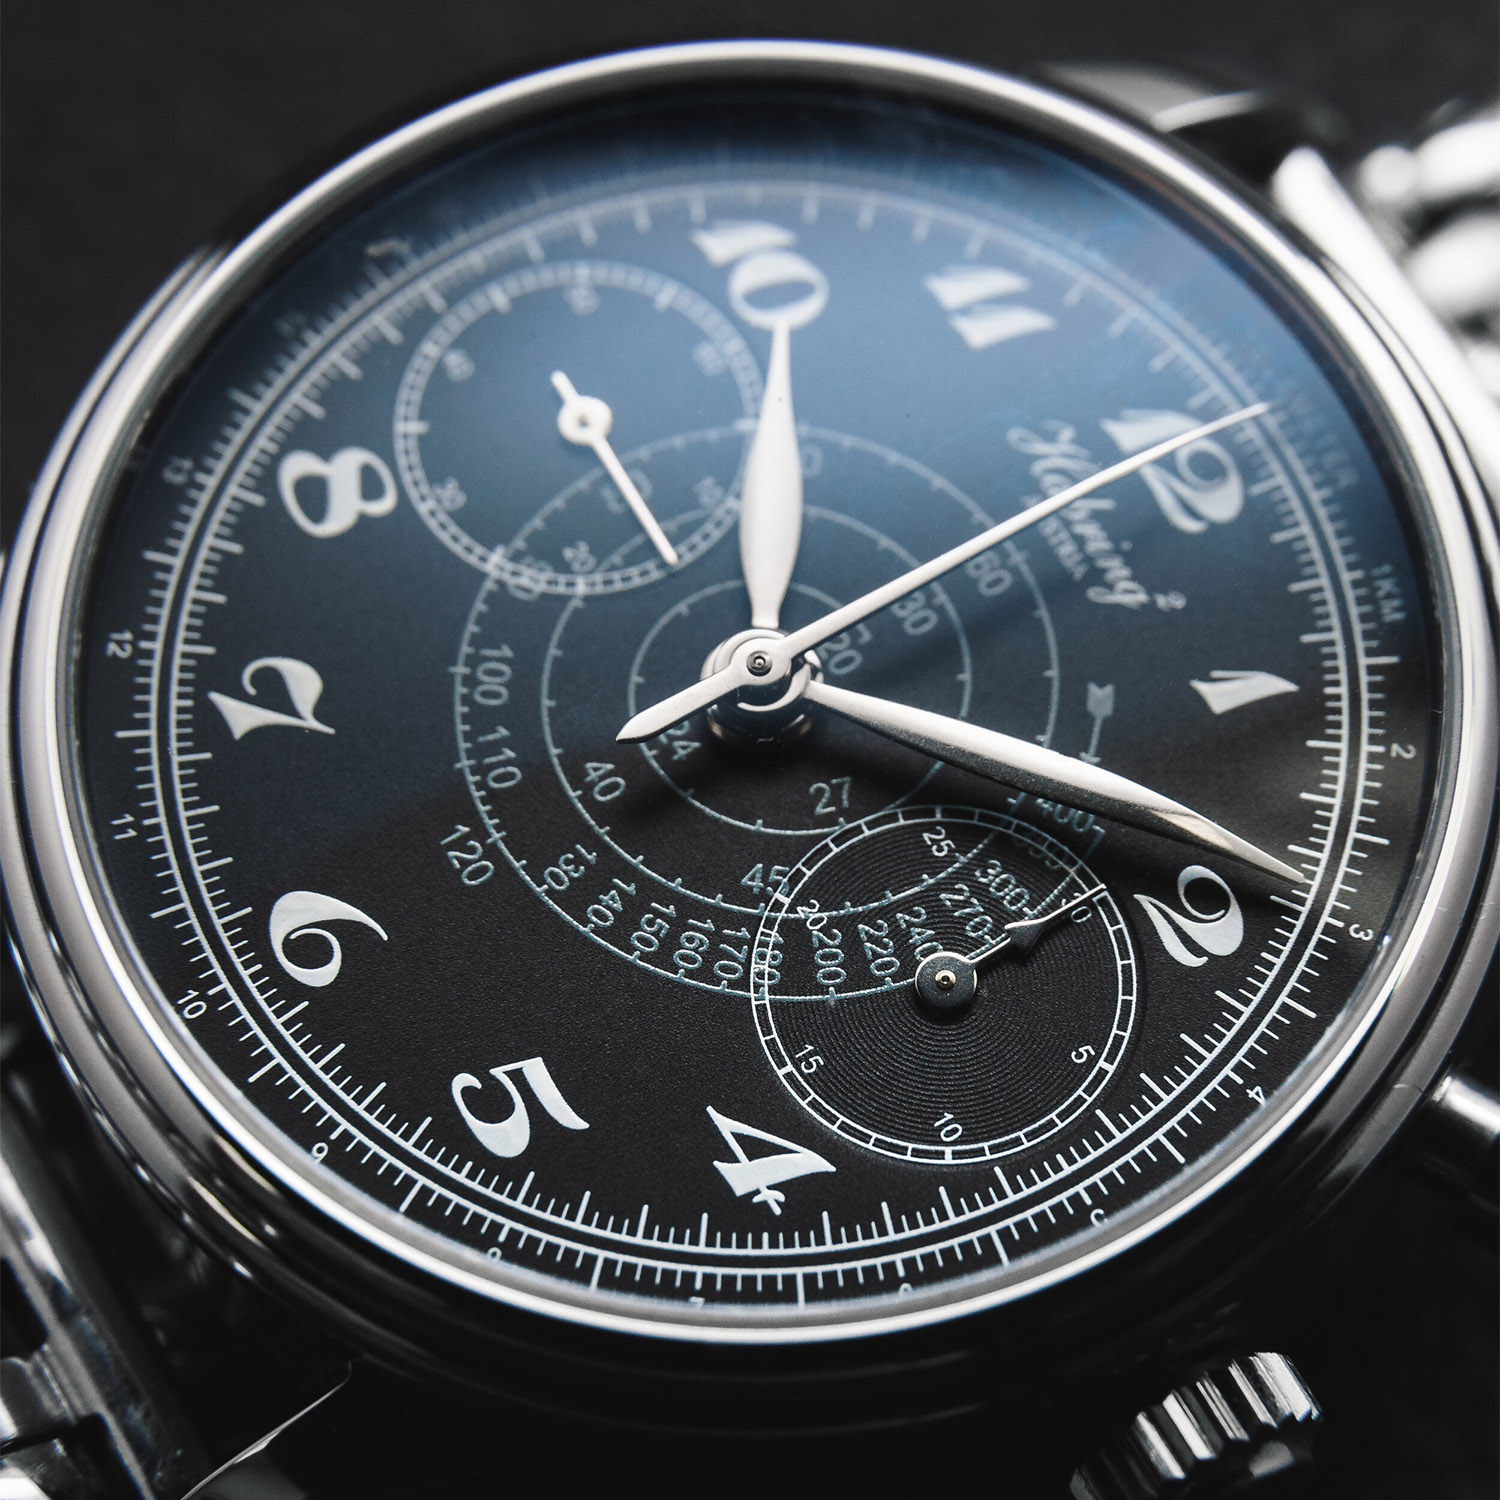 Habring² Monopusher Chronograph Japan Edition Black Dial